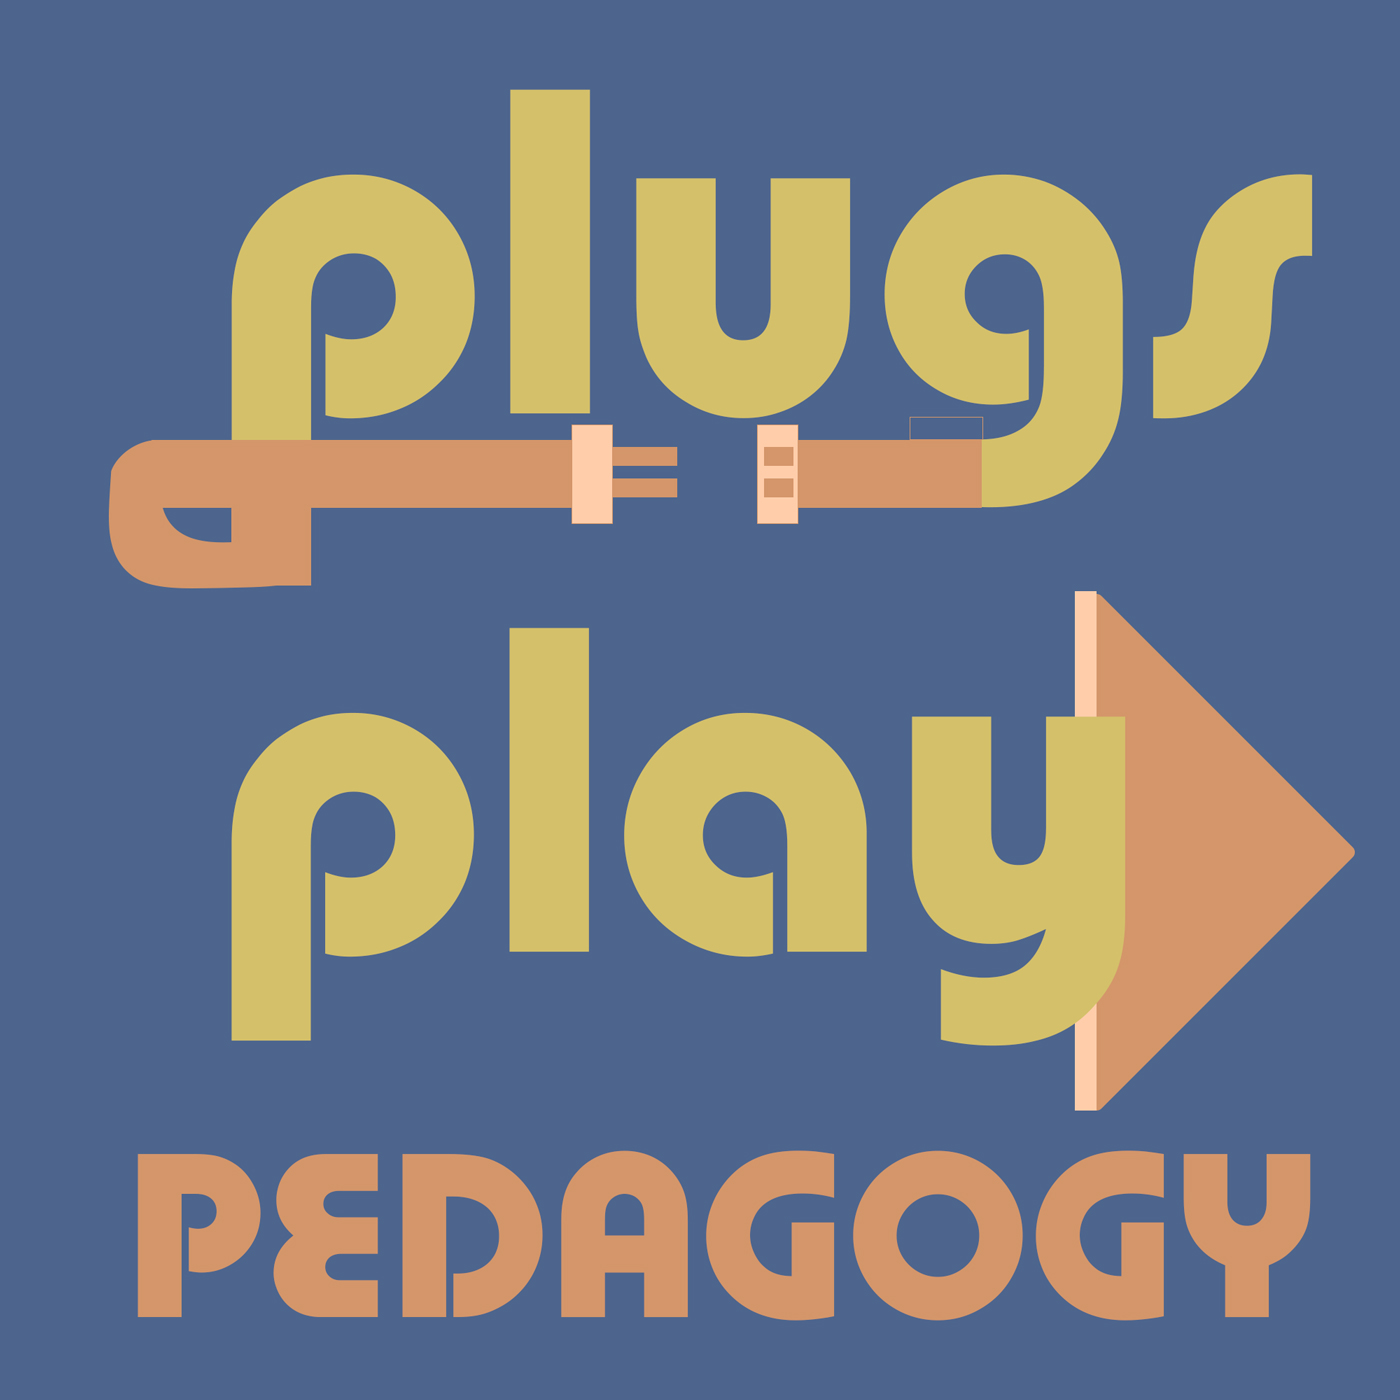 Plugs, Play, Pedagogy